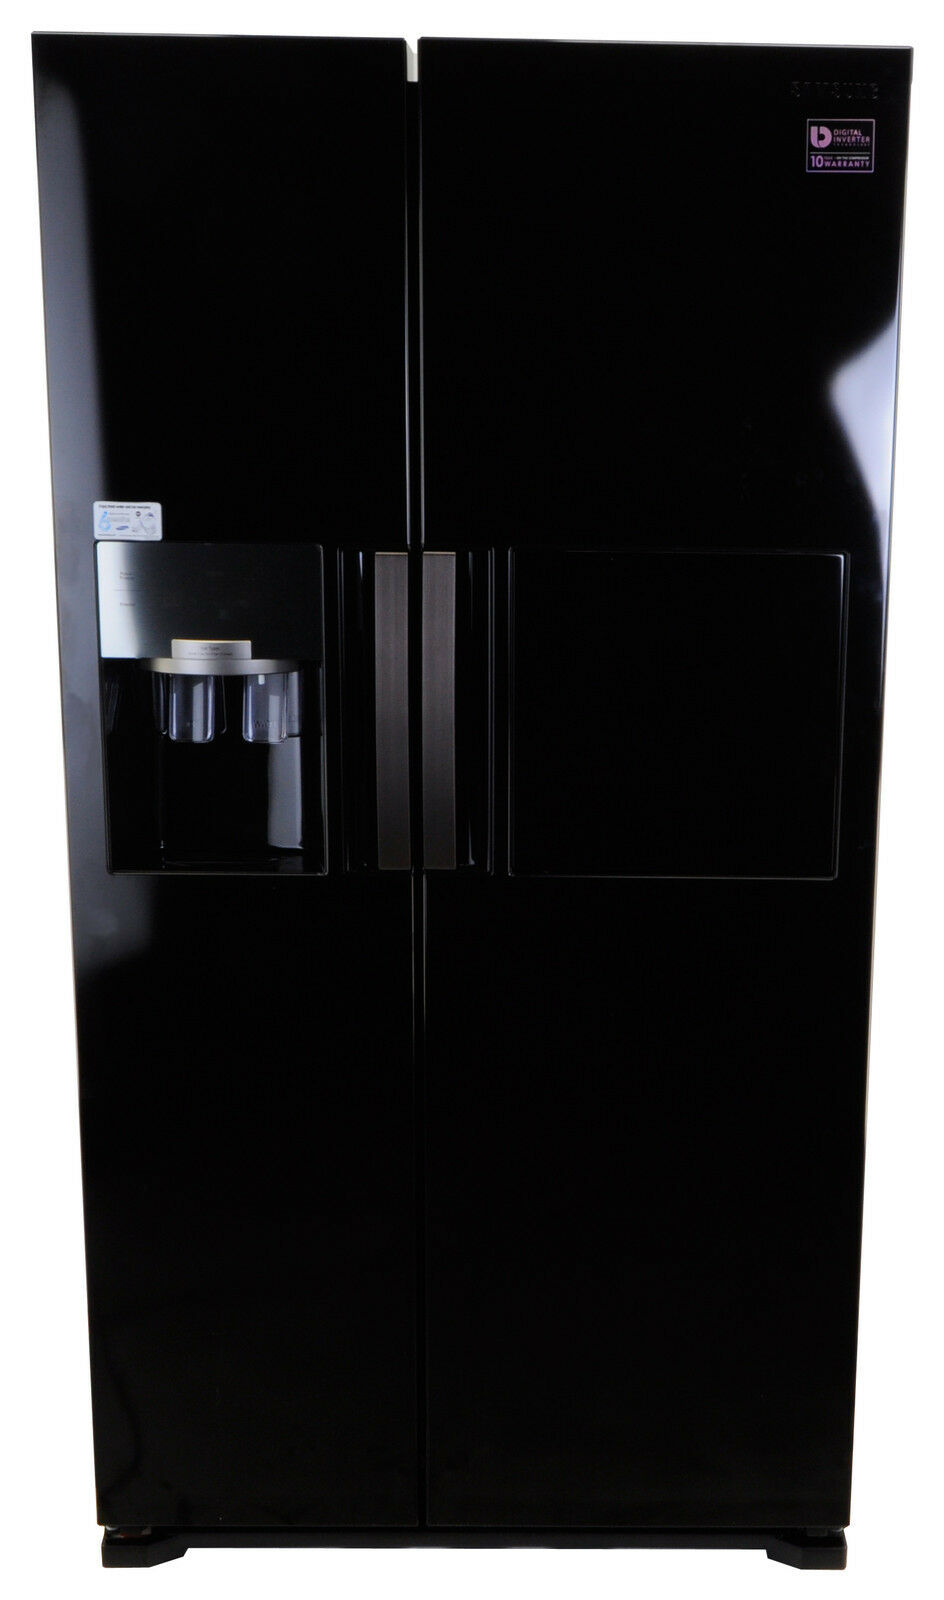 samsung rs7778fhcbc schwarz k hl gefrierkombination a 543 liter eur picclick de. Black Bedroom Furniture Sets. Home Design Ideas